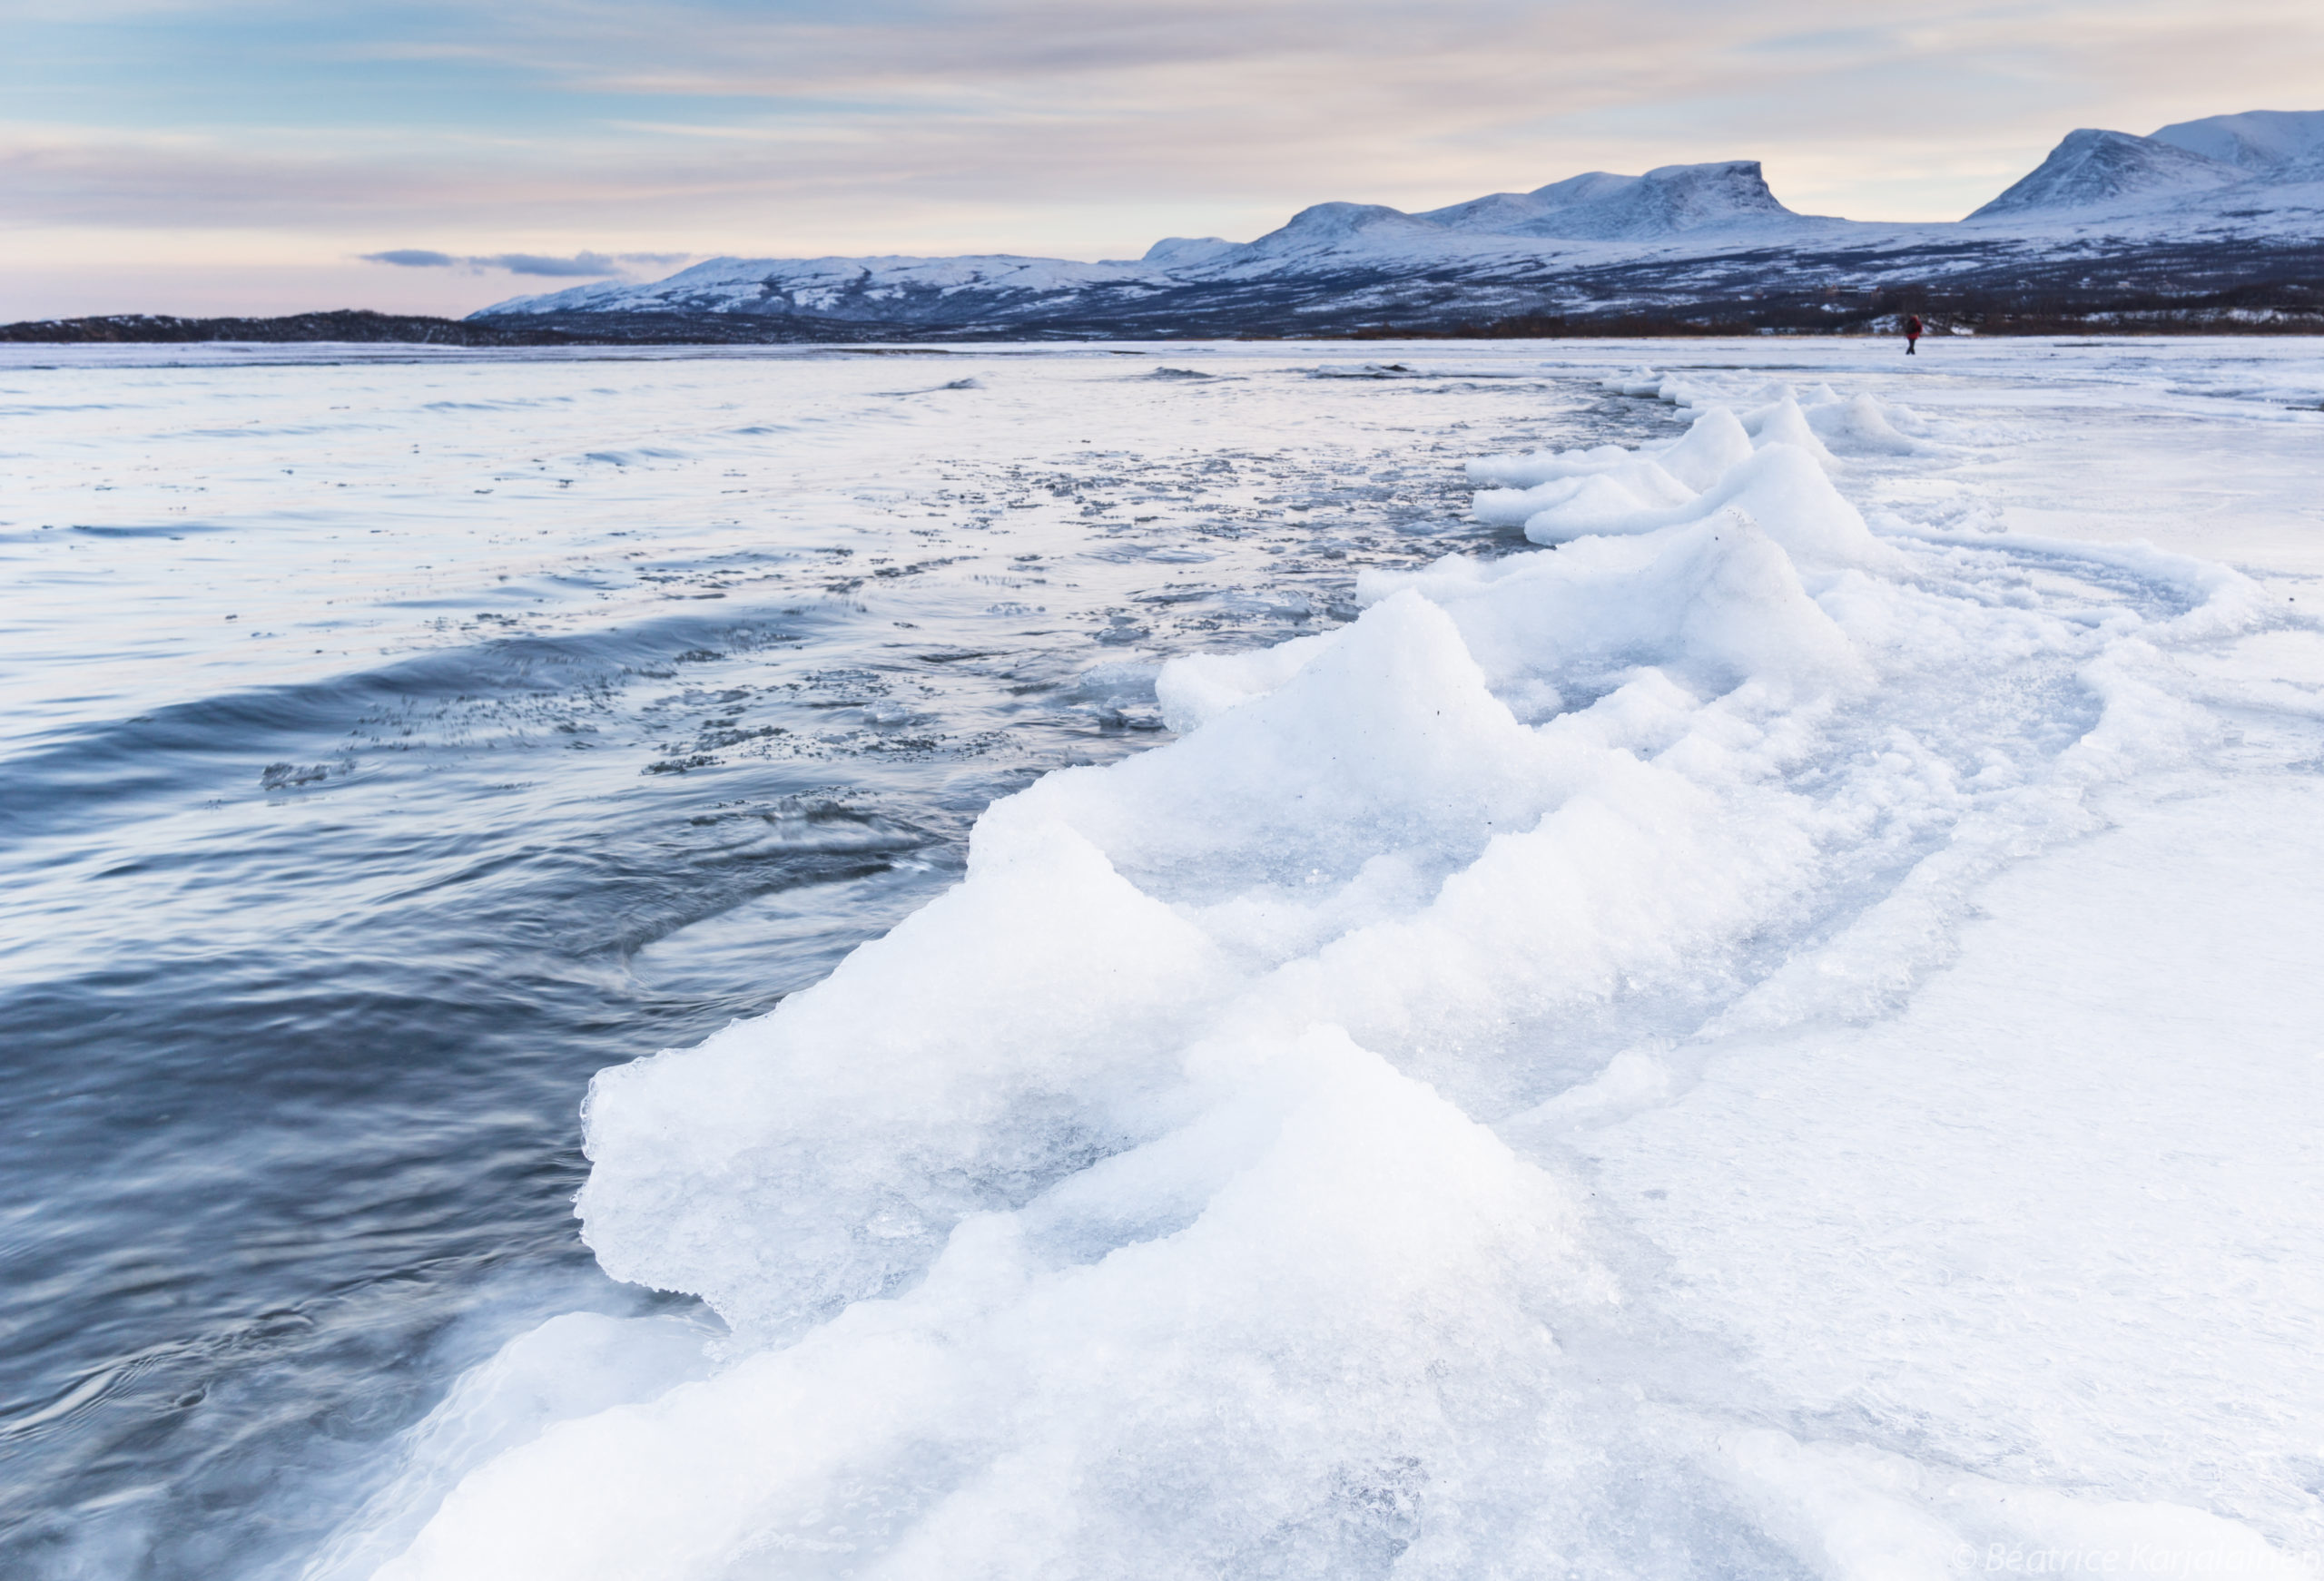 Frozen Waves, Biofriendly Image of the Day